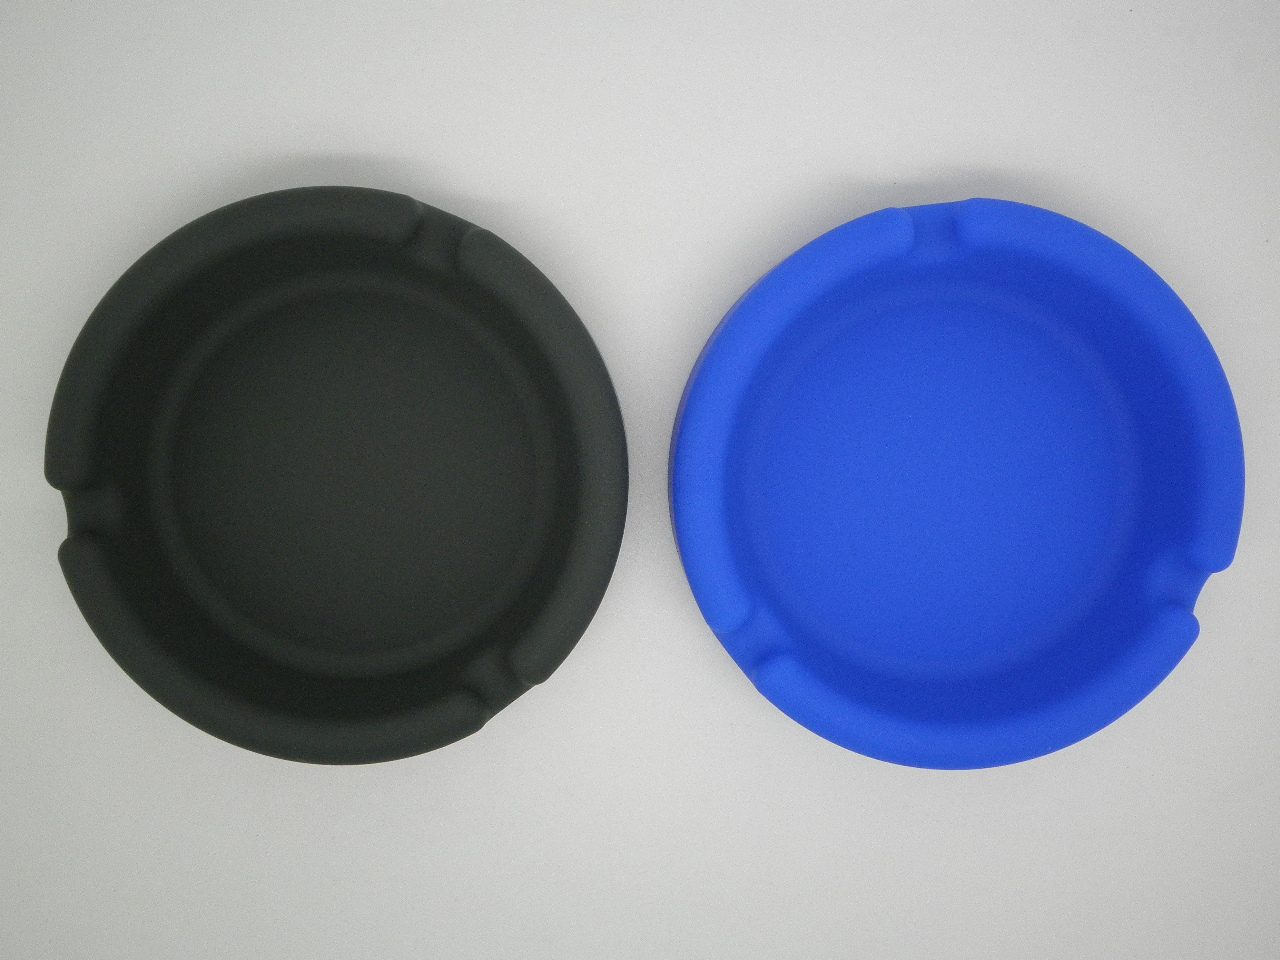 http://www.refinehksilicone.cn/data/images/product/20180417101619_414.JPG